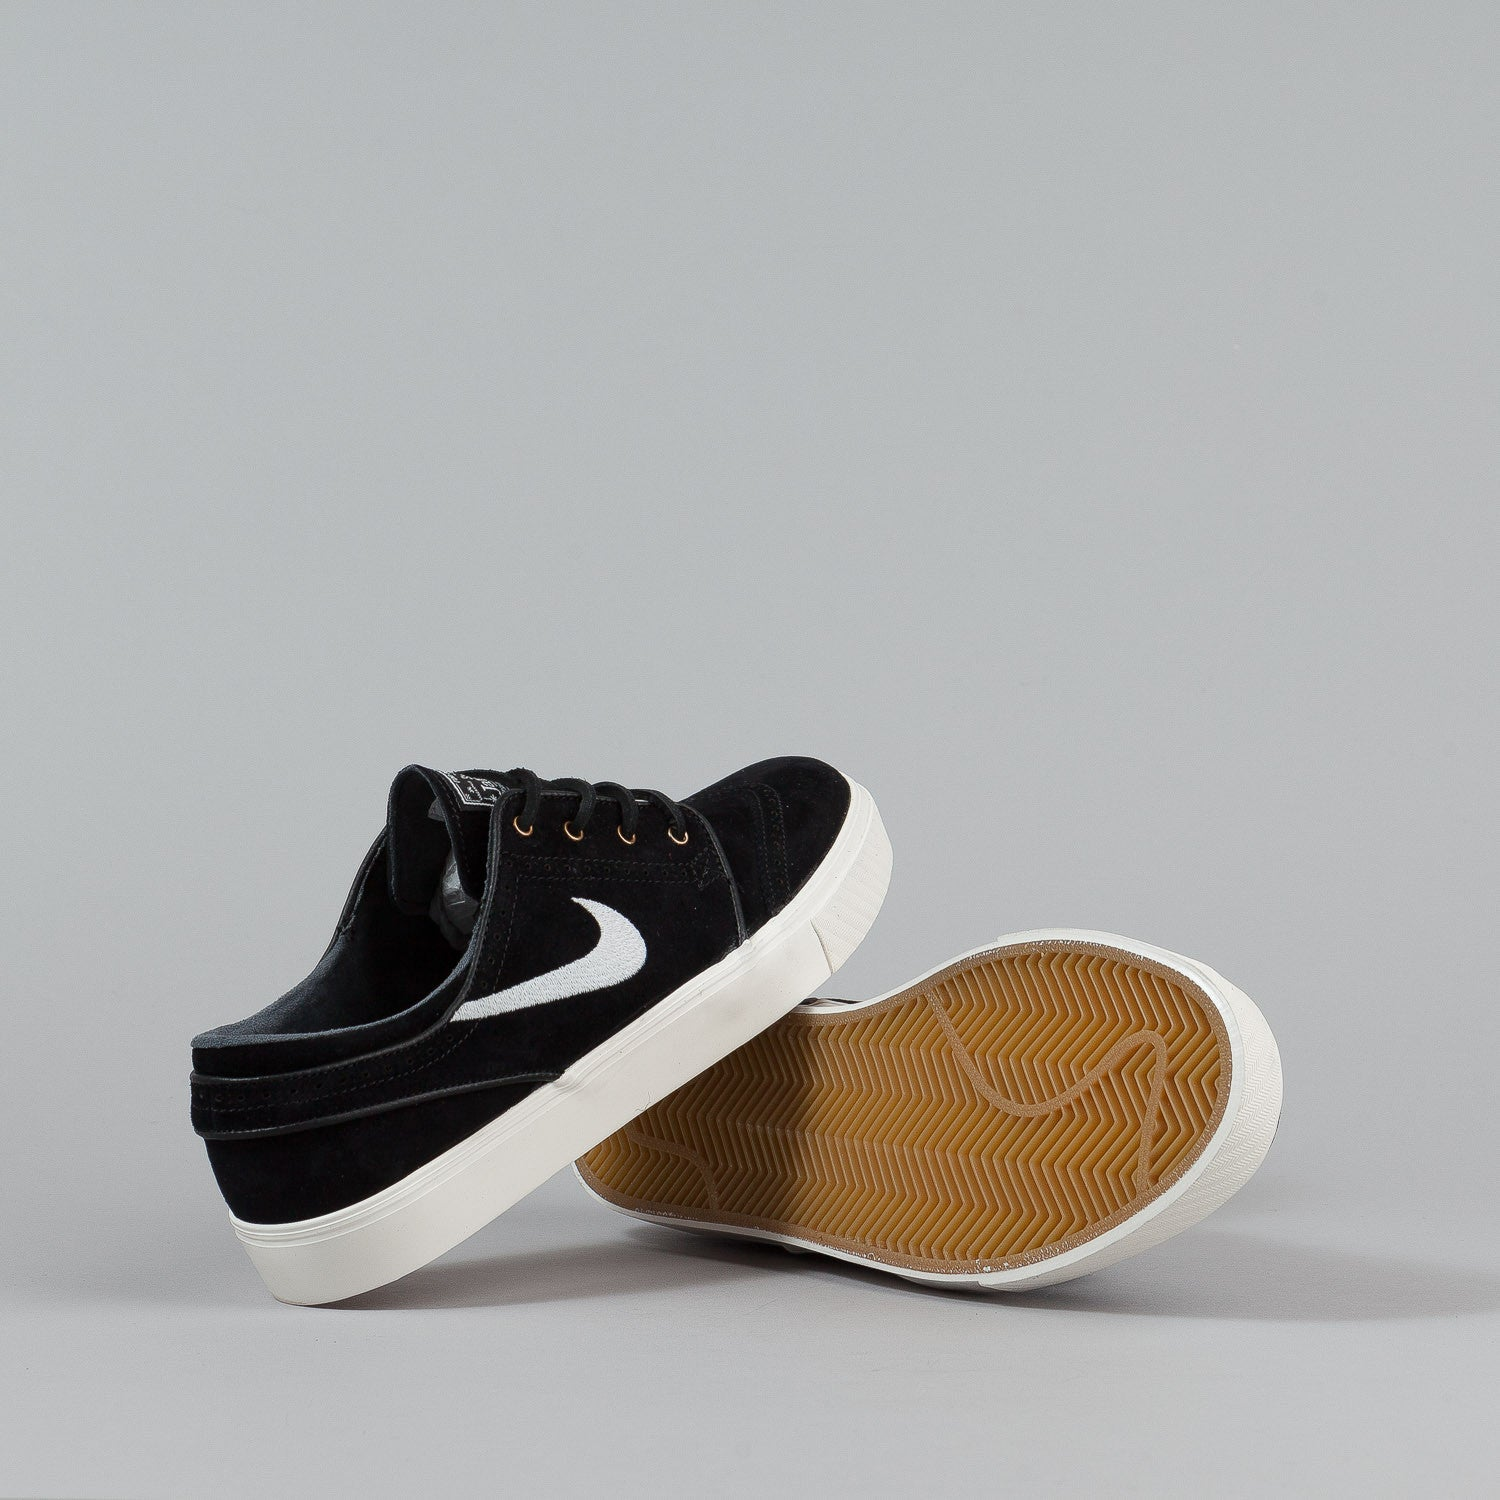 Nike SB Stefan Janoski Elite Shoes Black / Sail